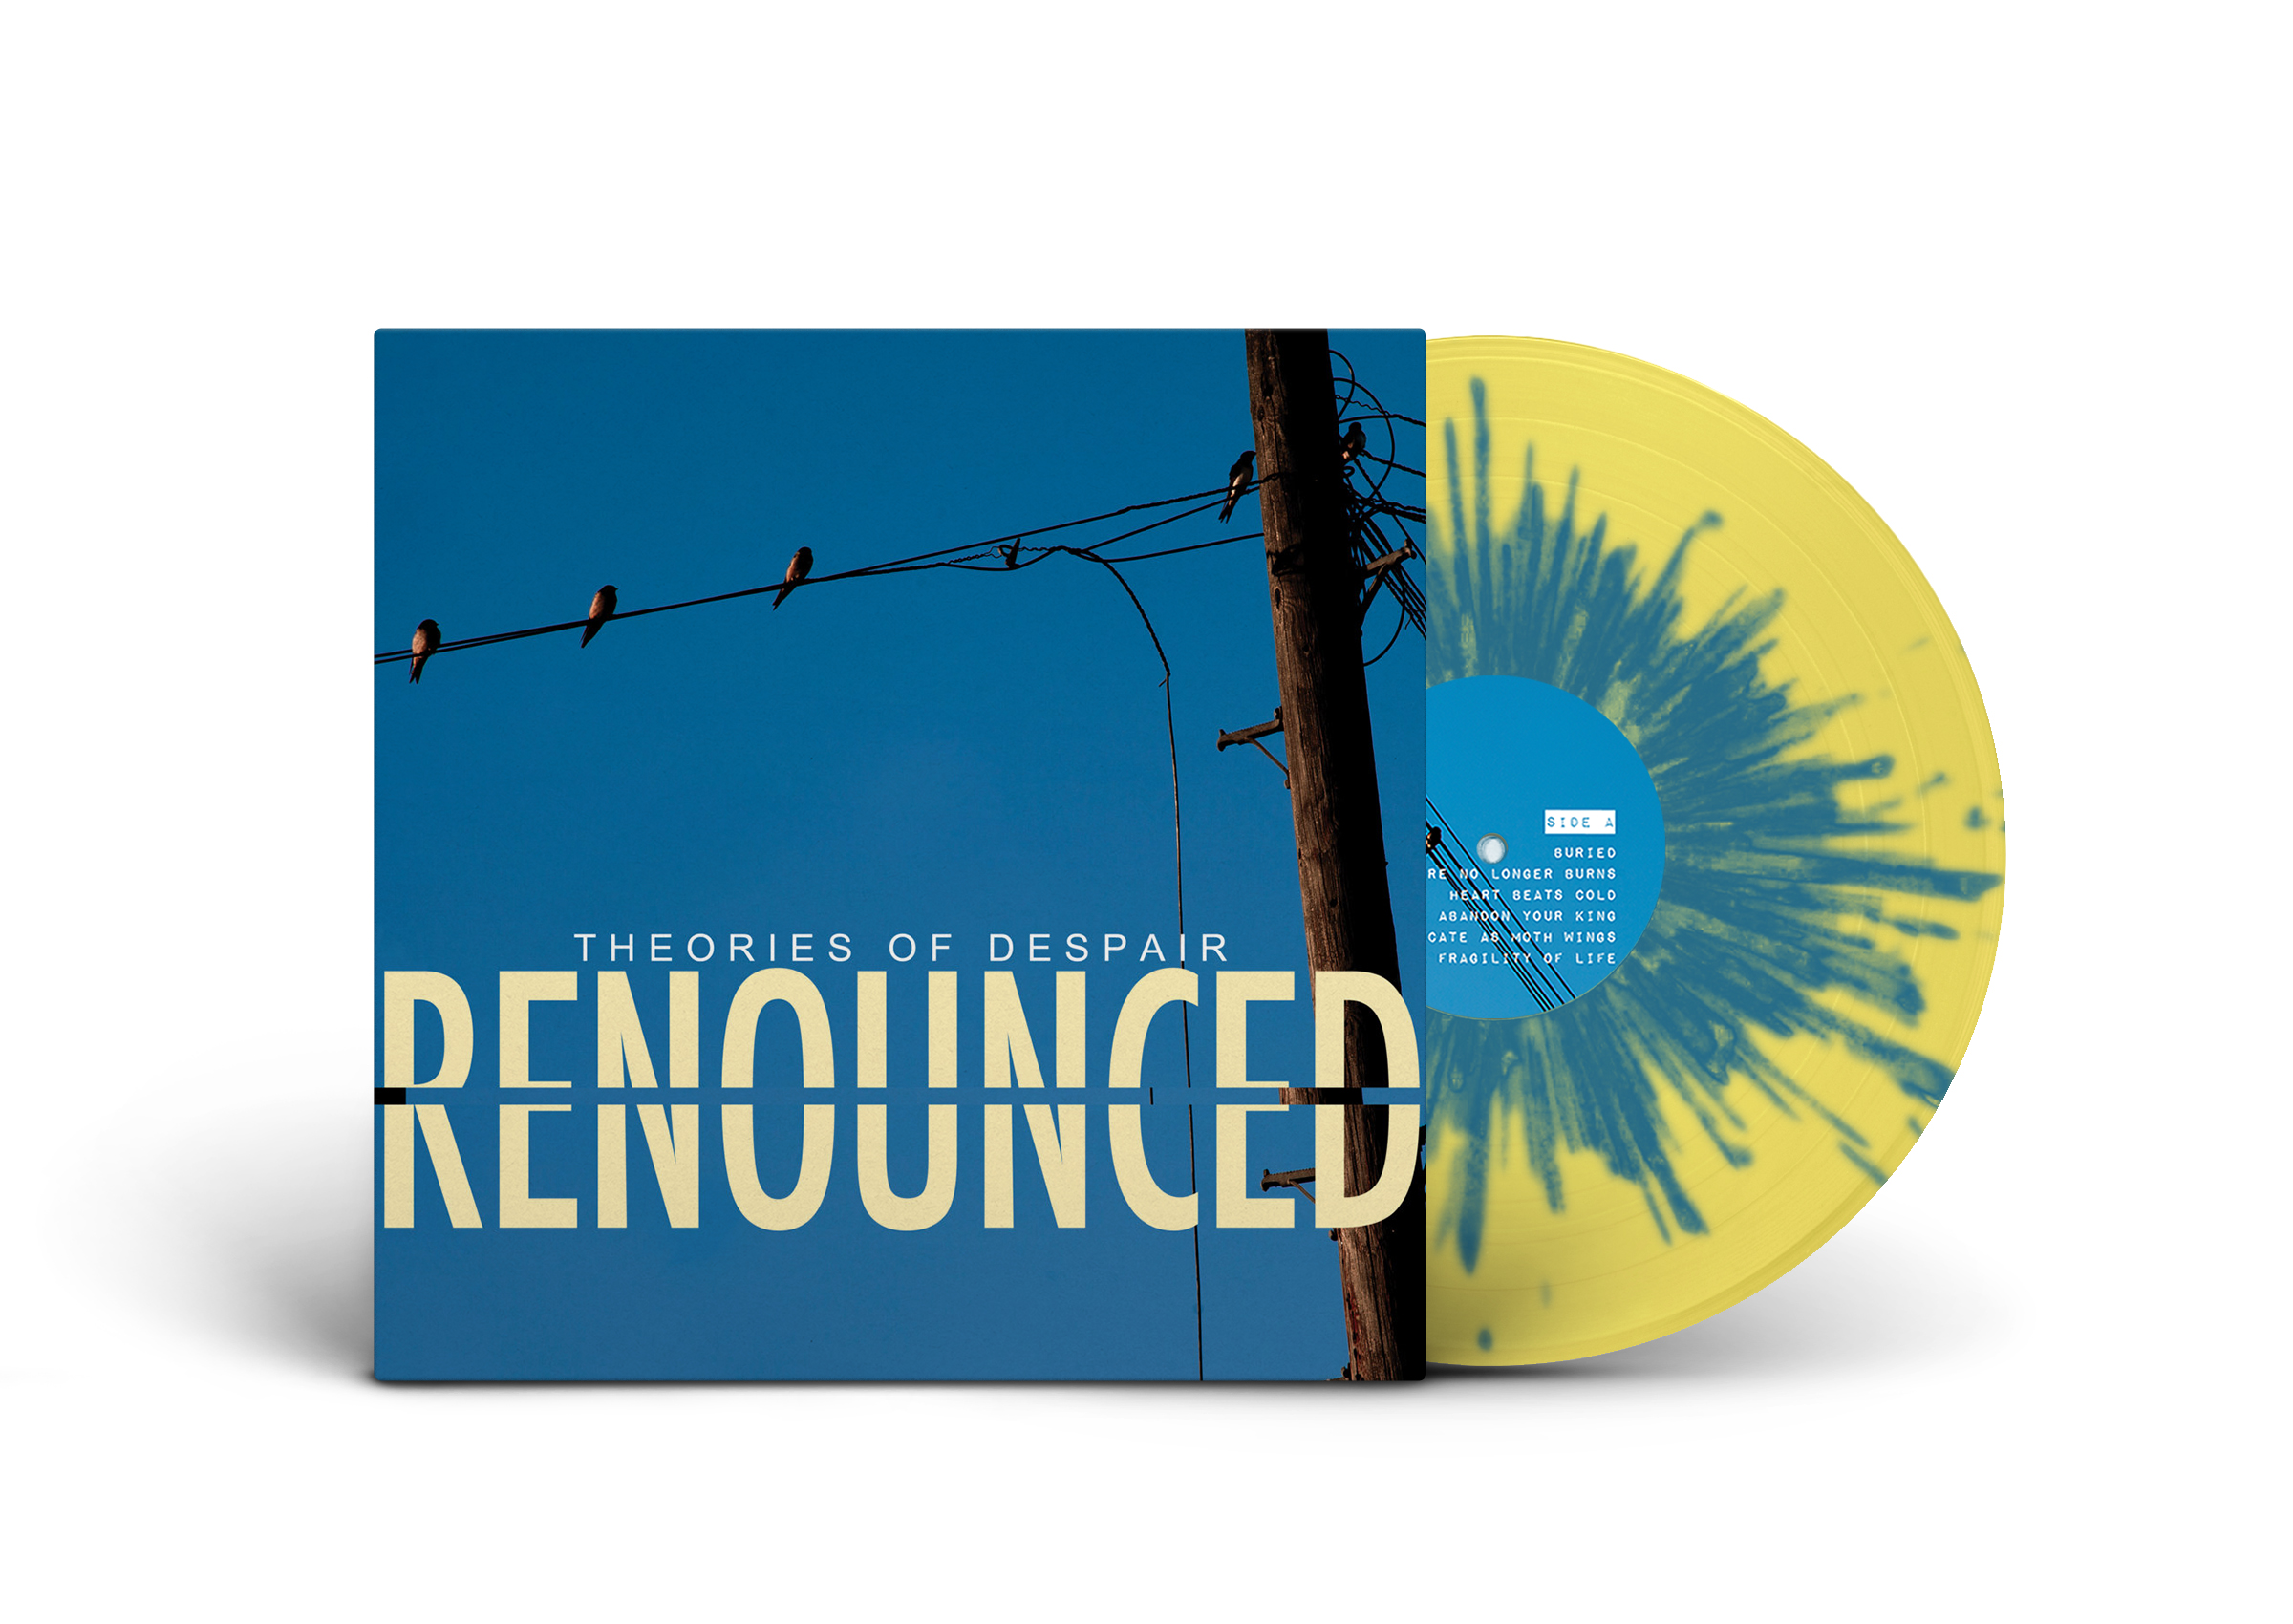 Renounced - Theories Of Despair (reissue)